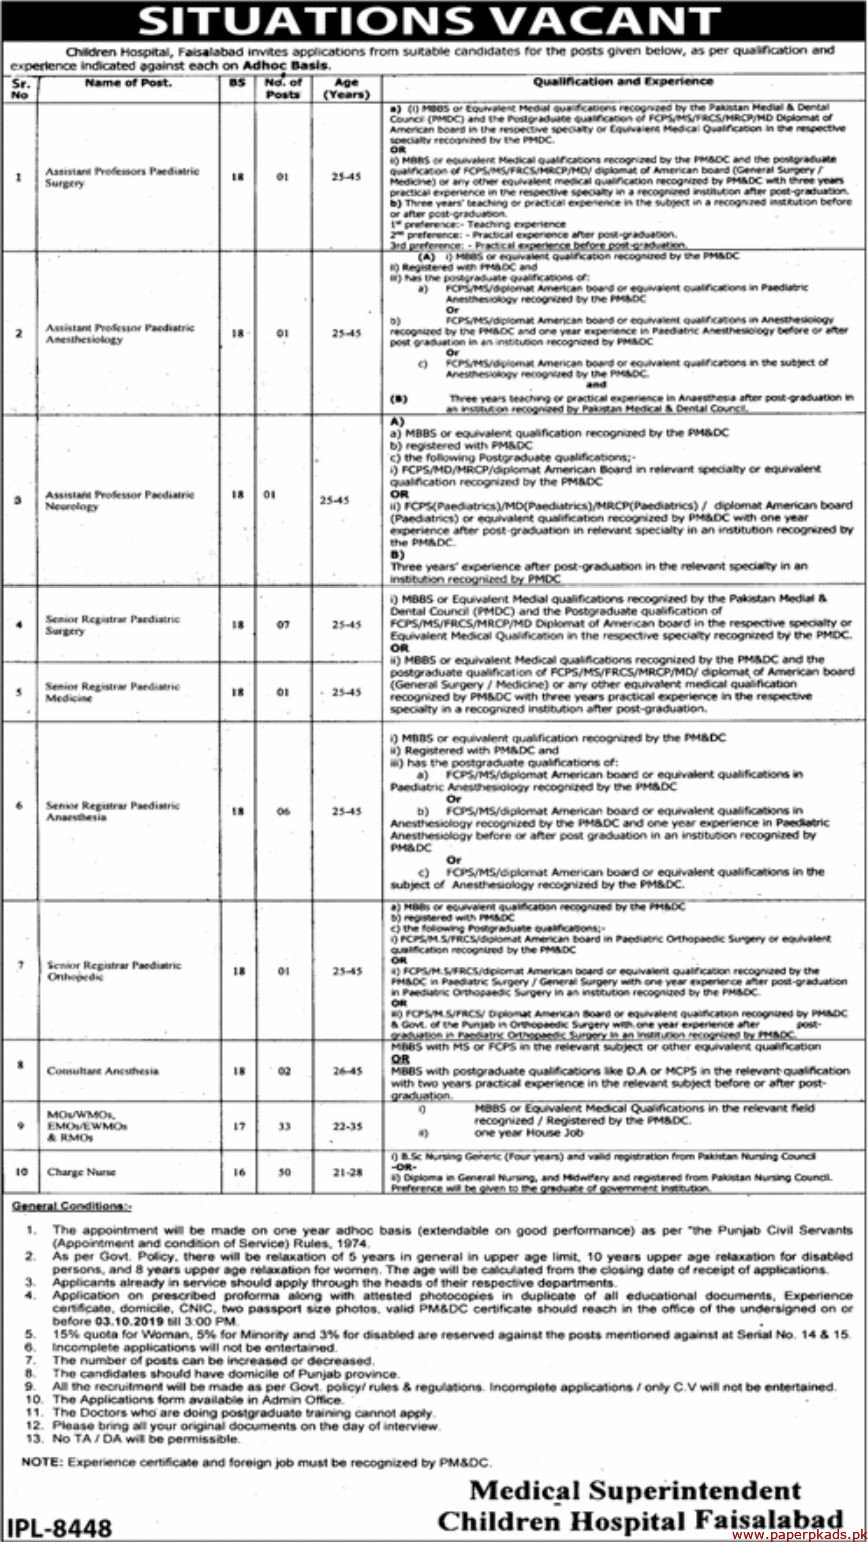 Children Hospital Faisalabad Jobs 2019 Latest